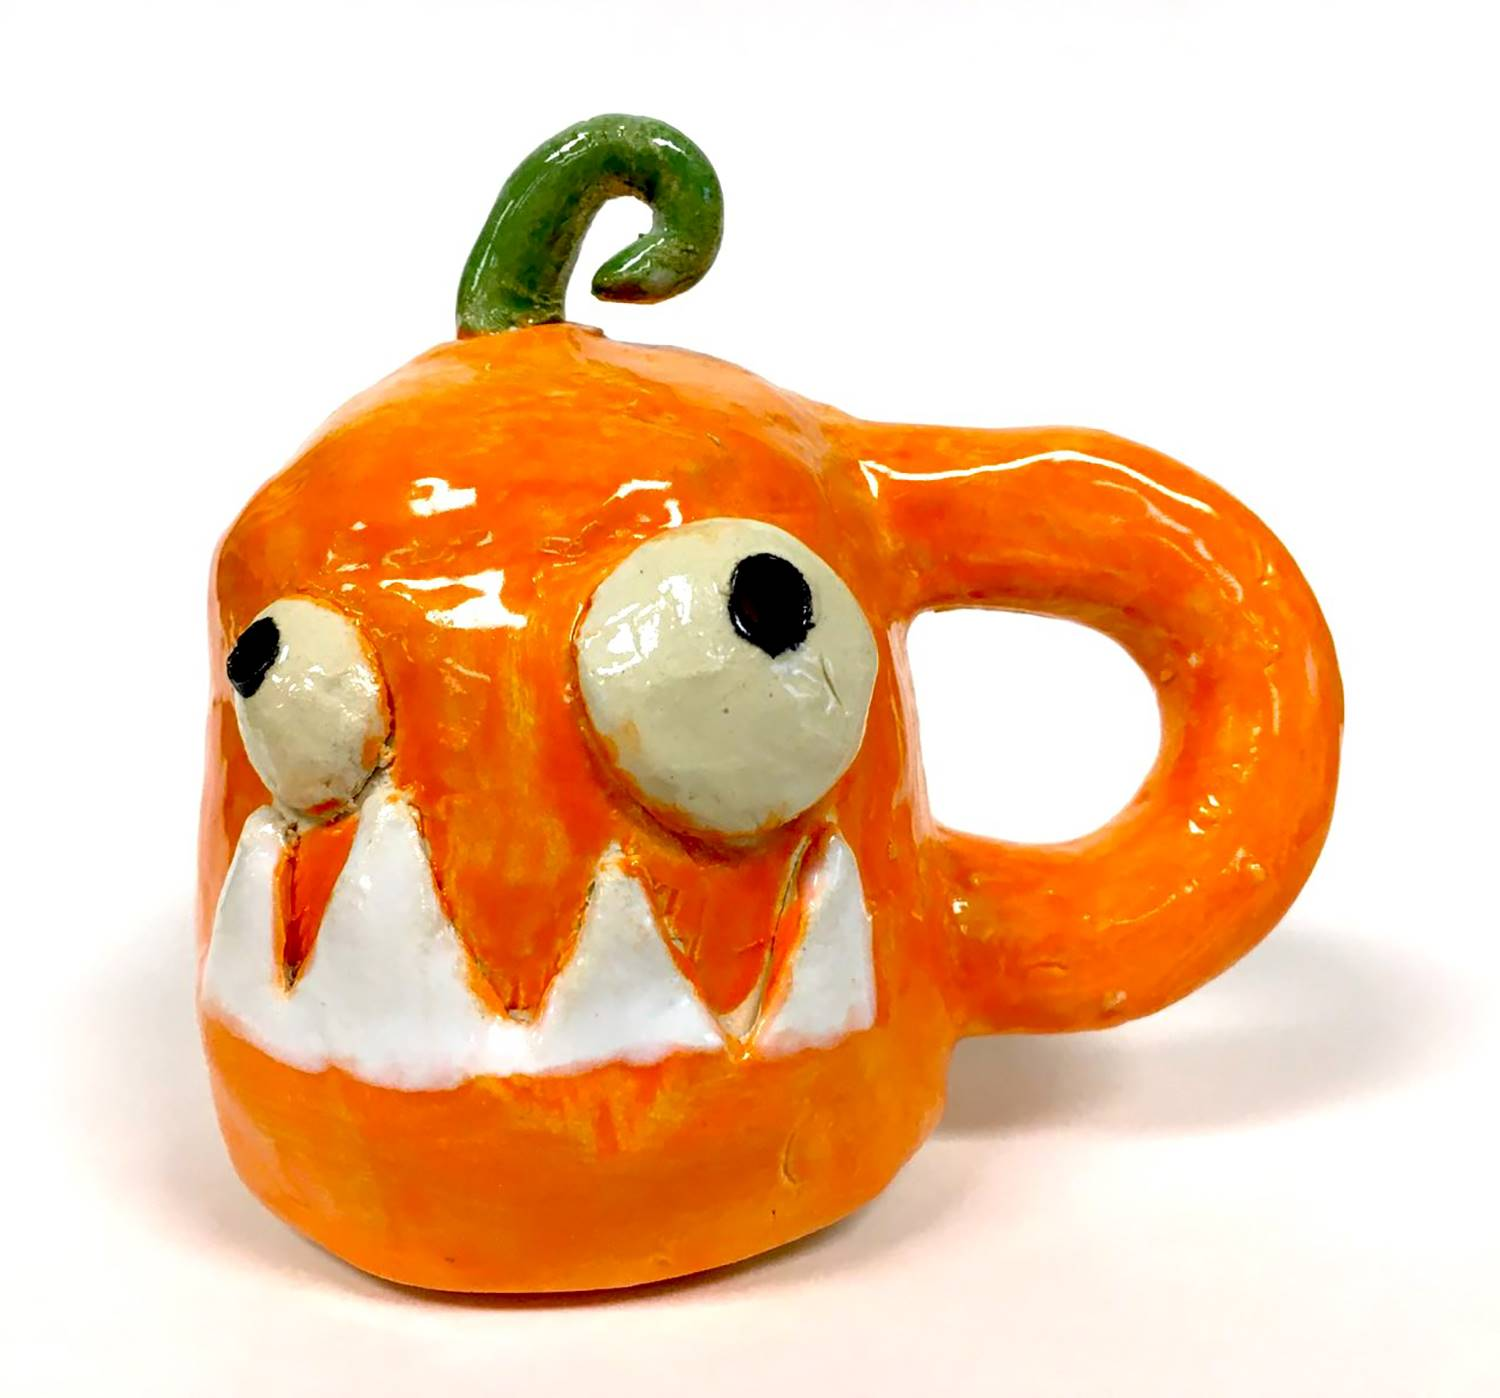 A orange ceramic monster made by a Vestal Middle School student that looks like a warped jack o'lant